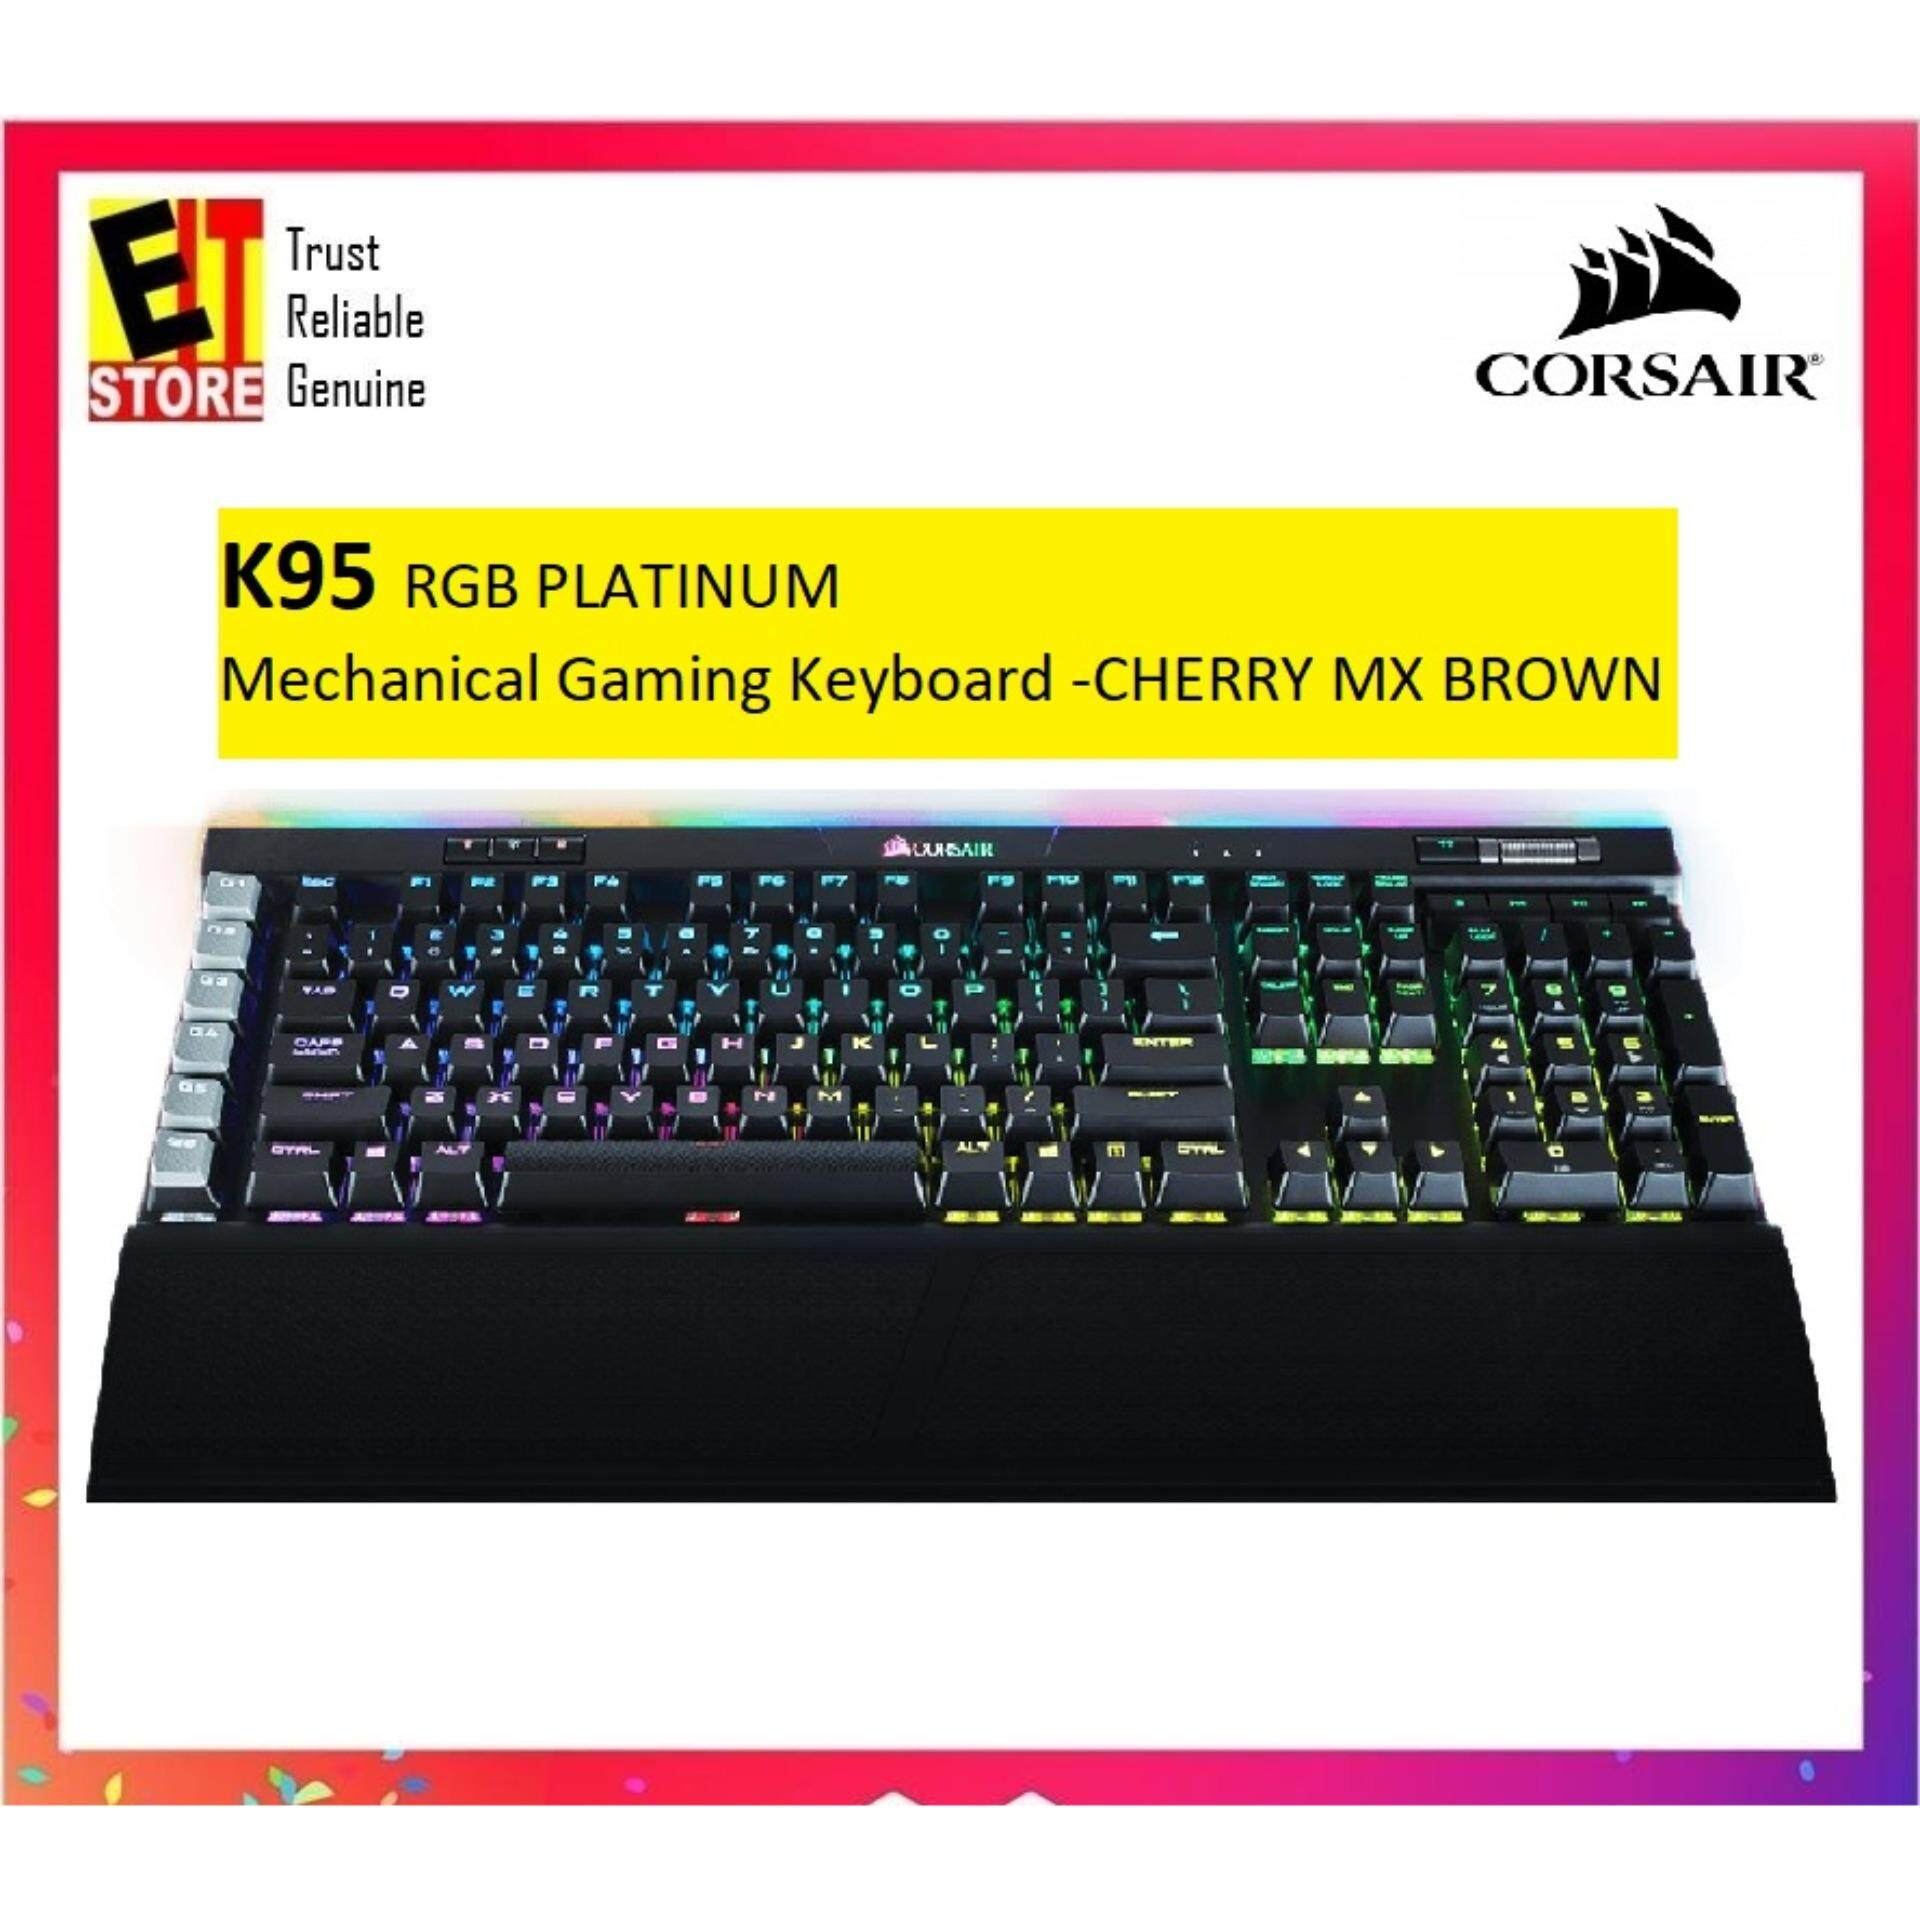 Corsair Computer Accessories Keyboards Price In Malaysia Best Mechanical Keyboard K65 Rgb Red Switch K95 Platinum Cherry Mx Brown Ch 9127012 Na